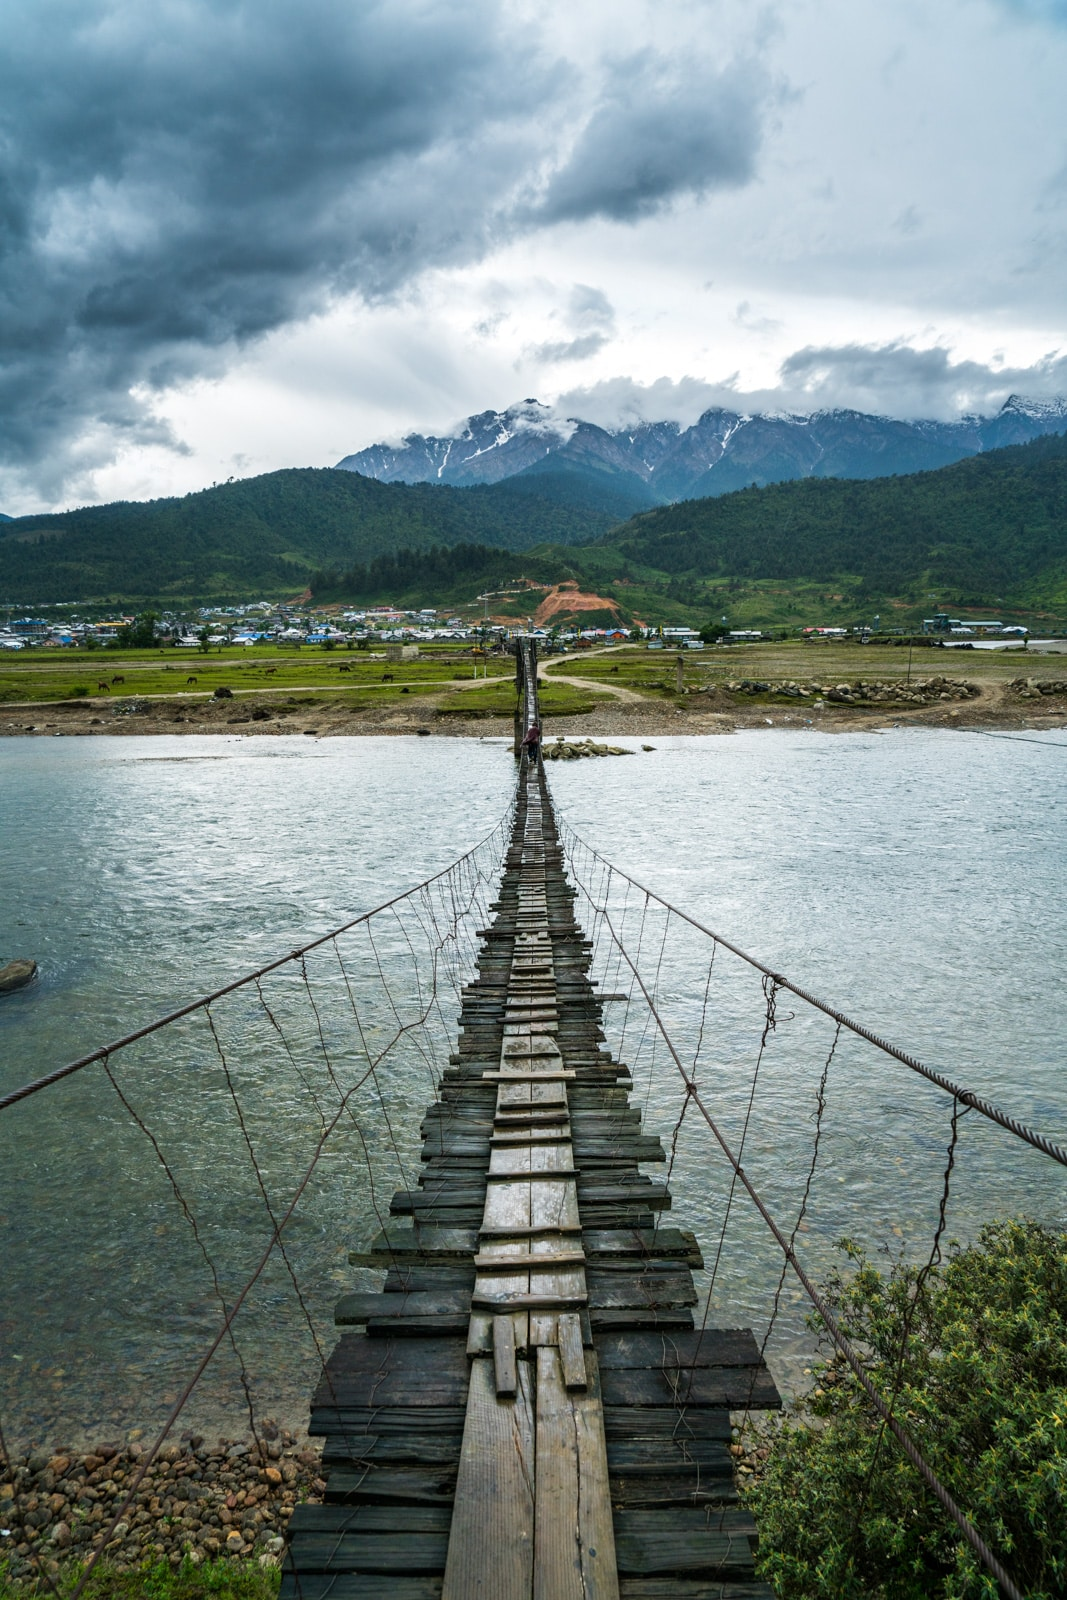 A wobbly wooden suspension bridge over a river in Mechuka, a village in Arunachal Pradesh state, Northeast India.